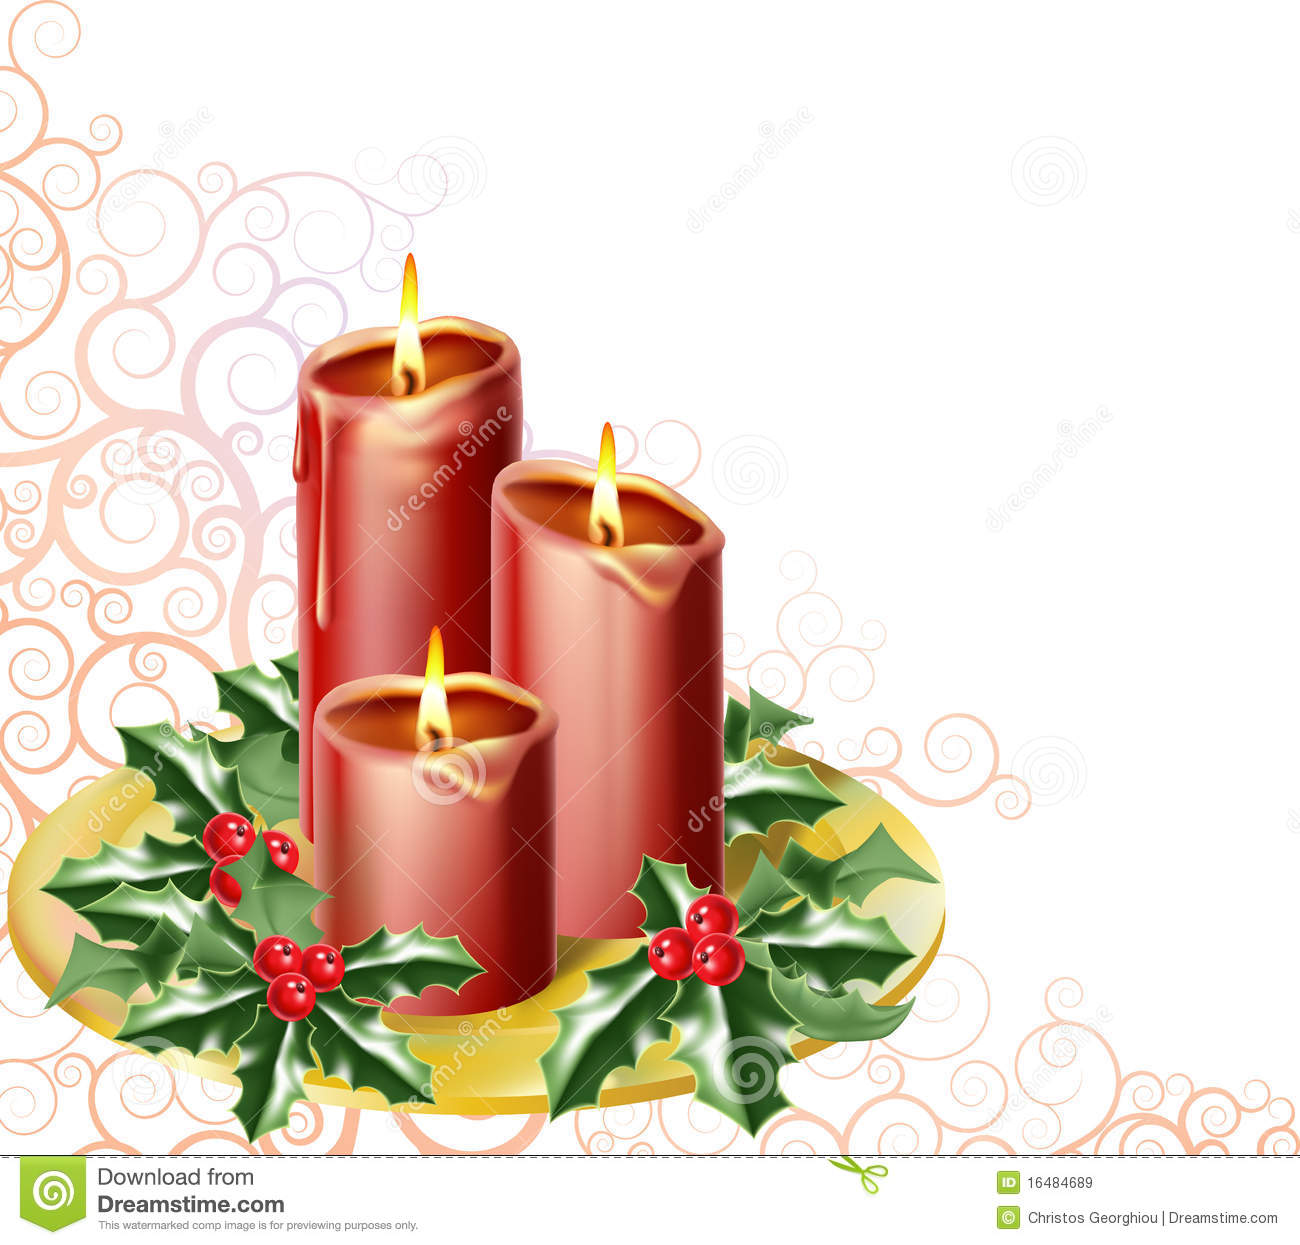 Candele di natale illustrazione vettoriale illustrazione for Candele colorate